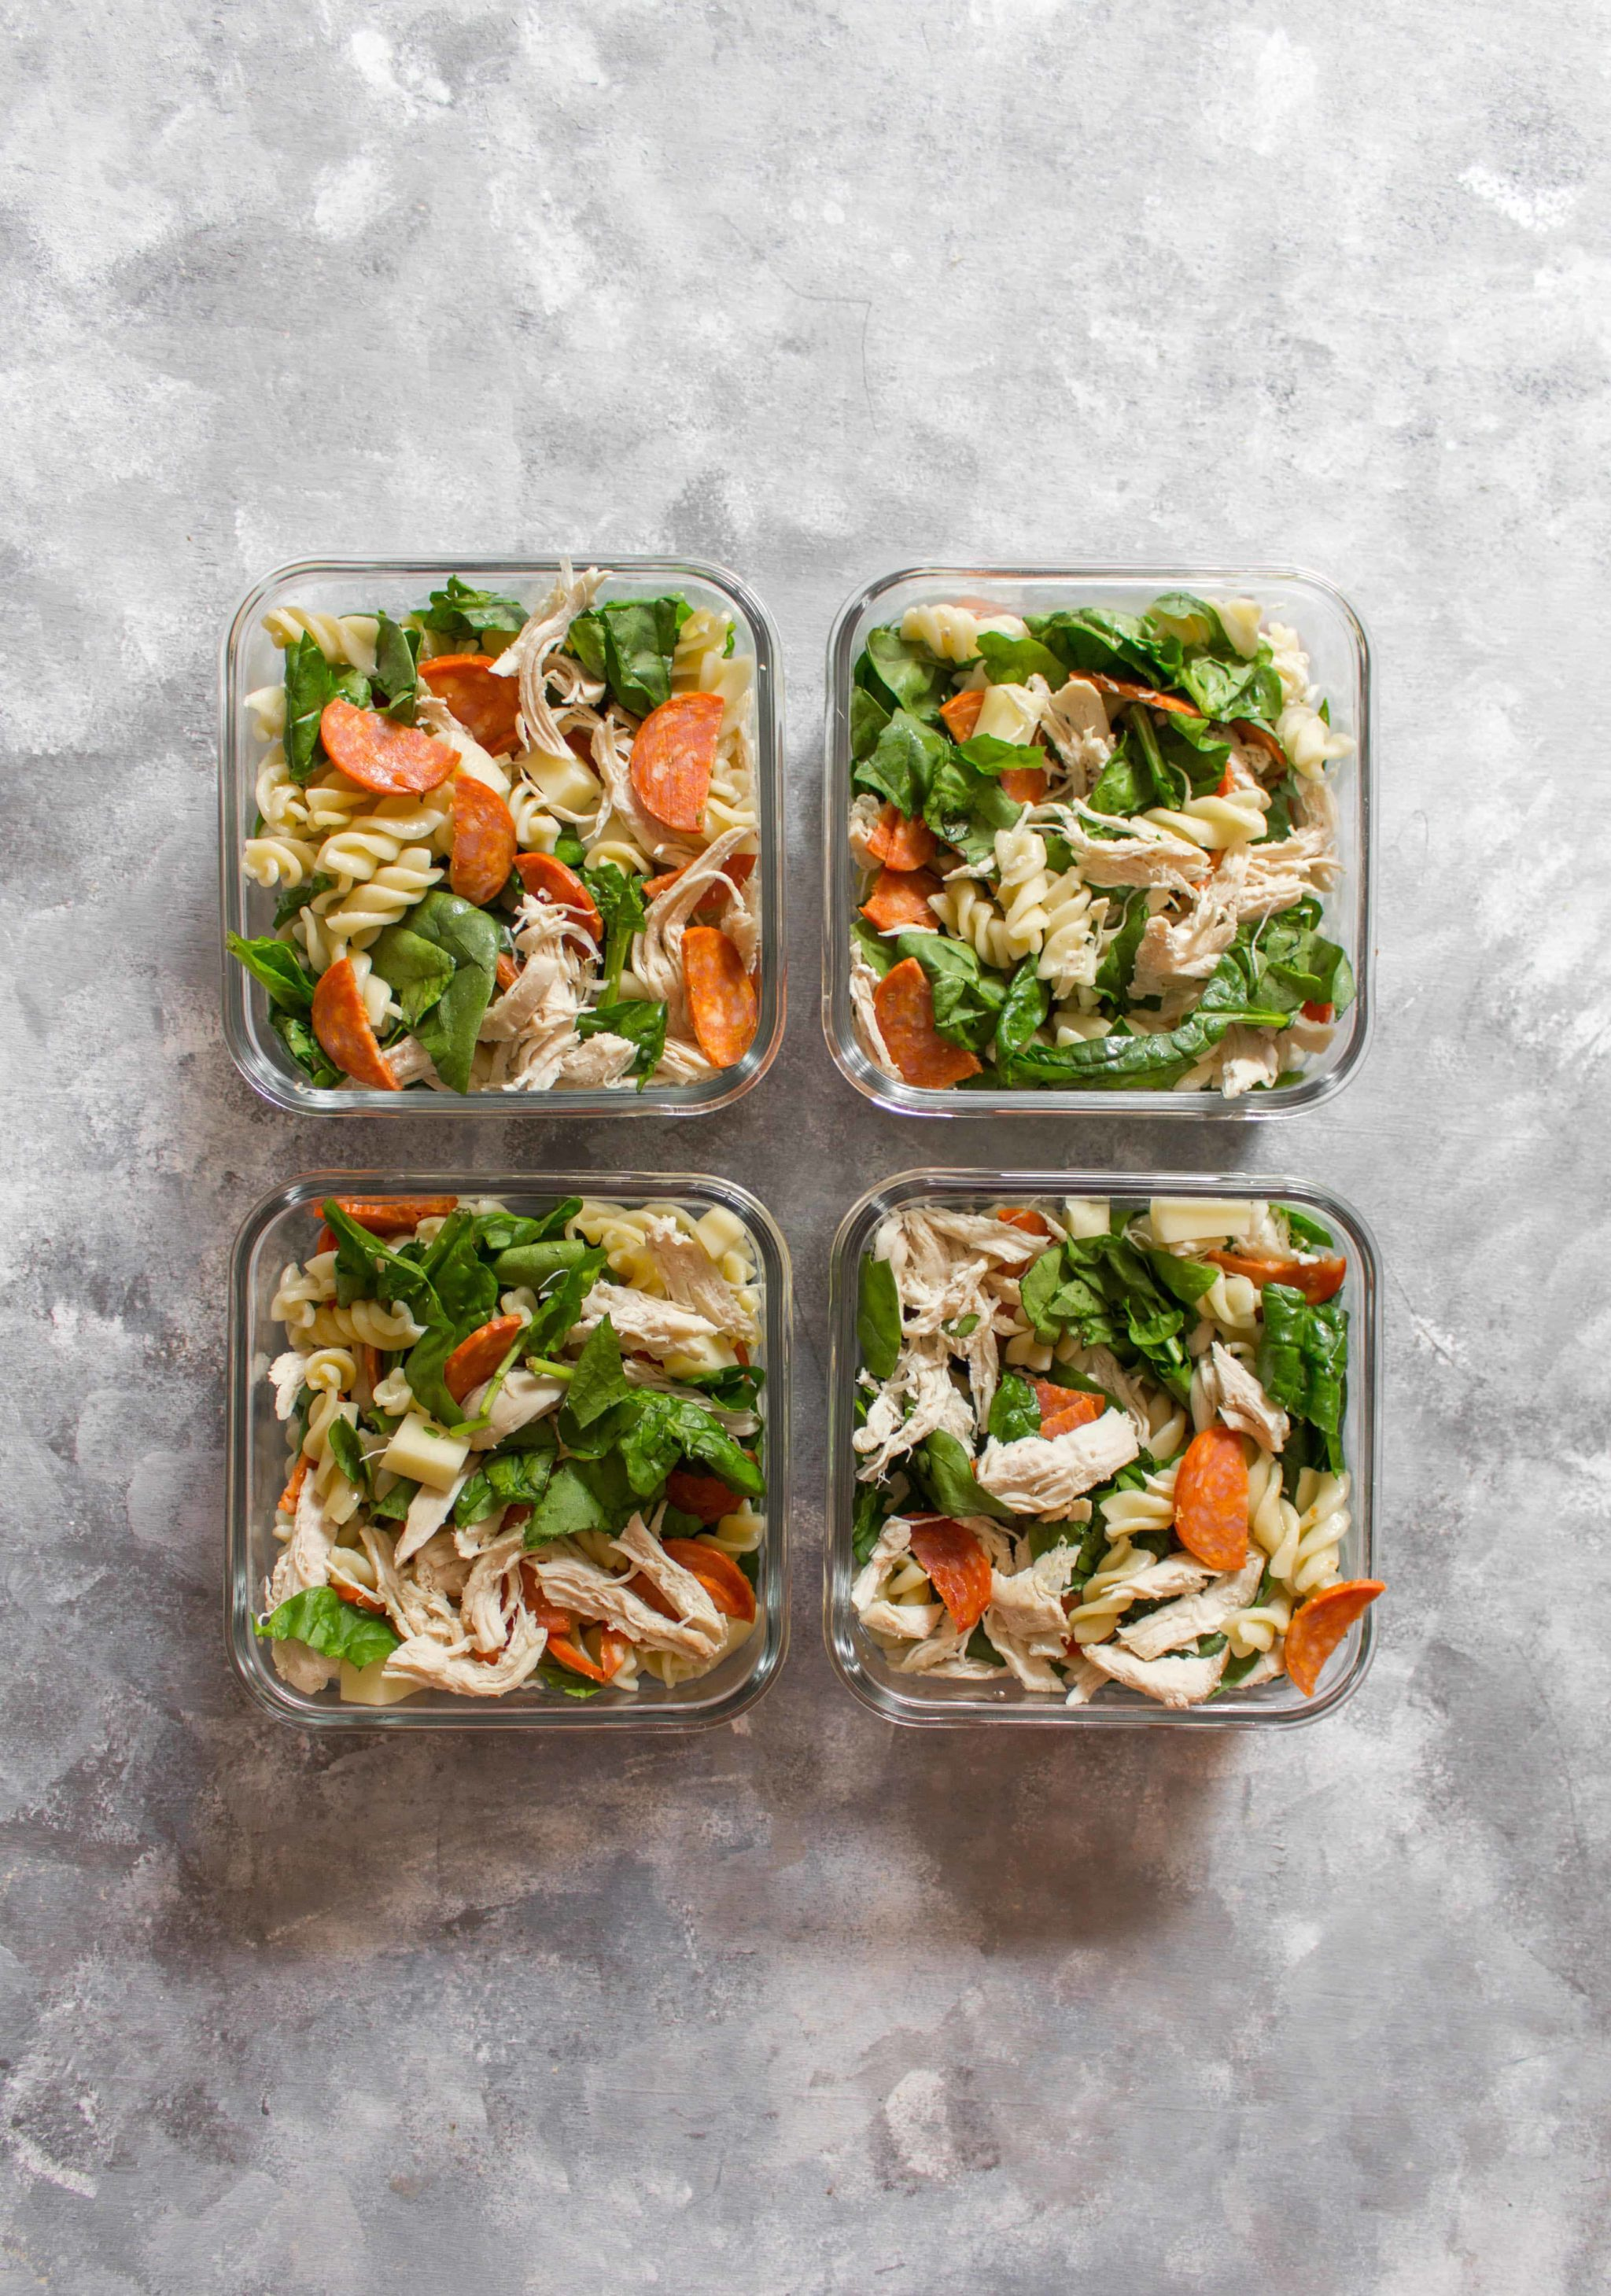 Pasta and veggies in four lunch boxes.